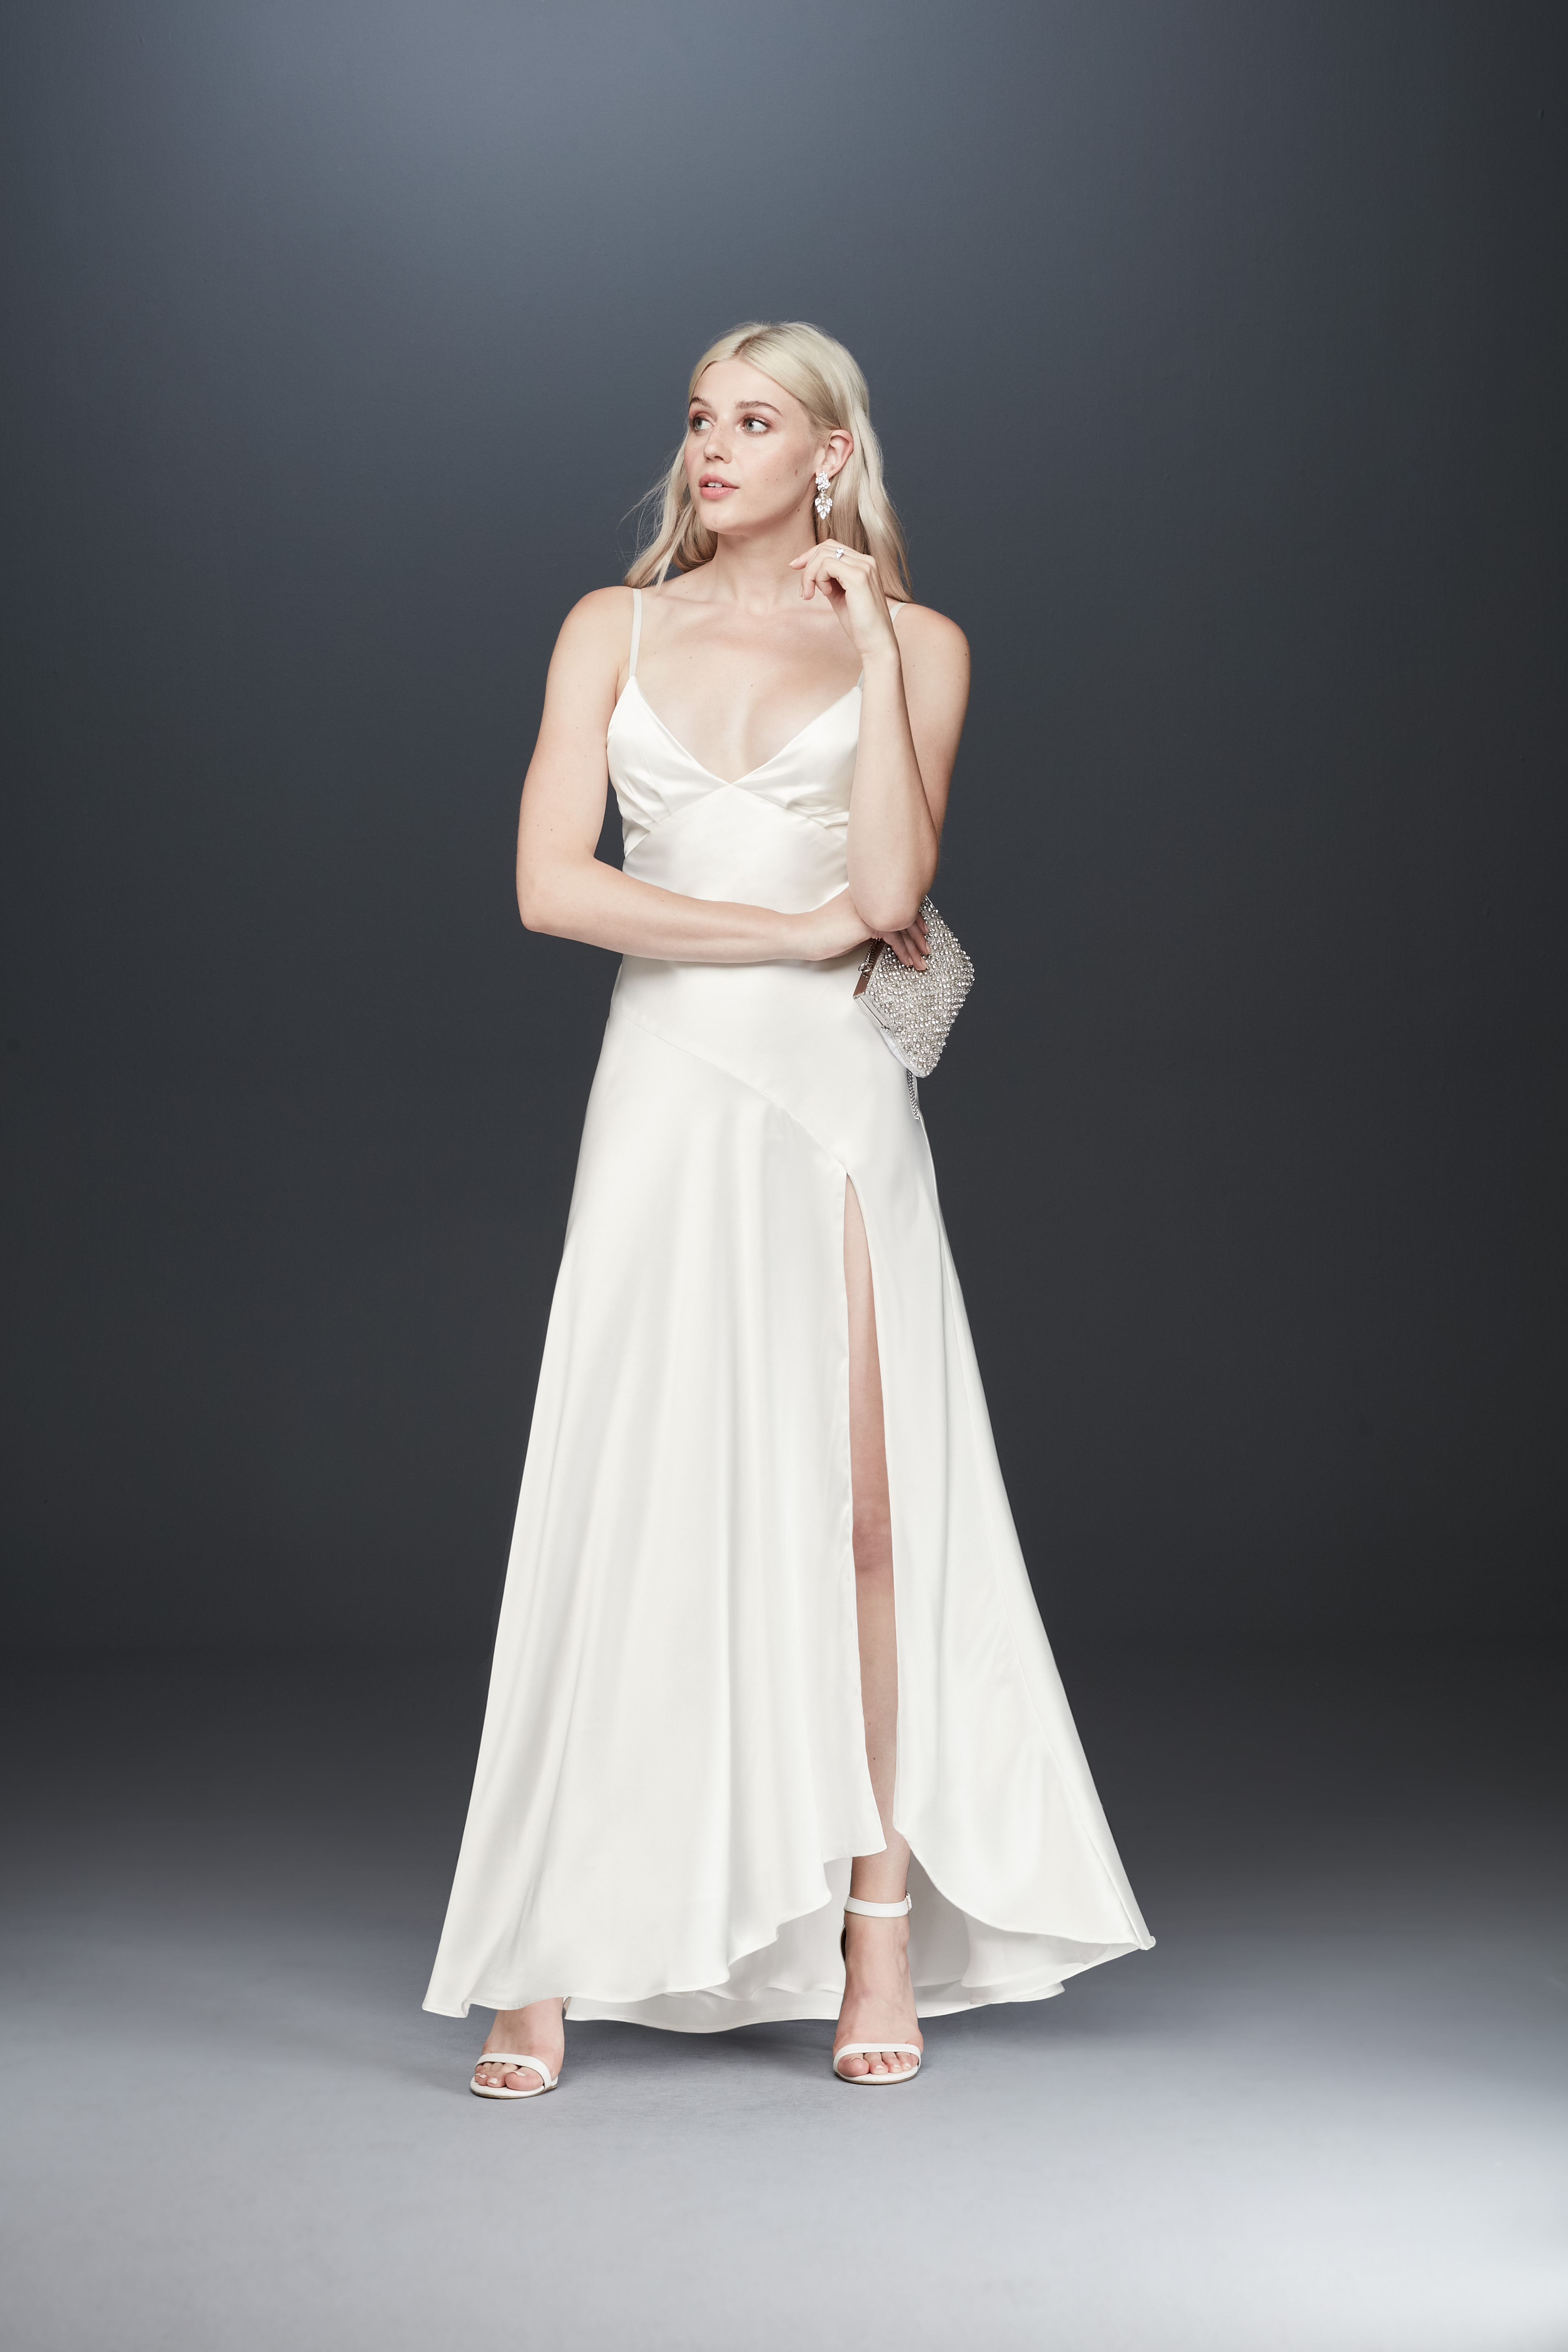 Bride looking away in spaghetti strap satin sheath wedding dress from Fame & Partners x David's Bridal collection